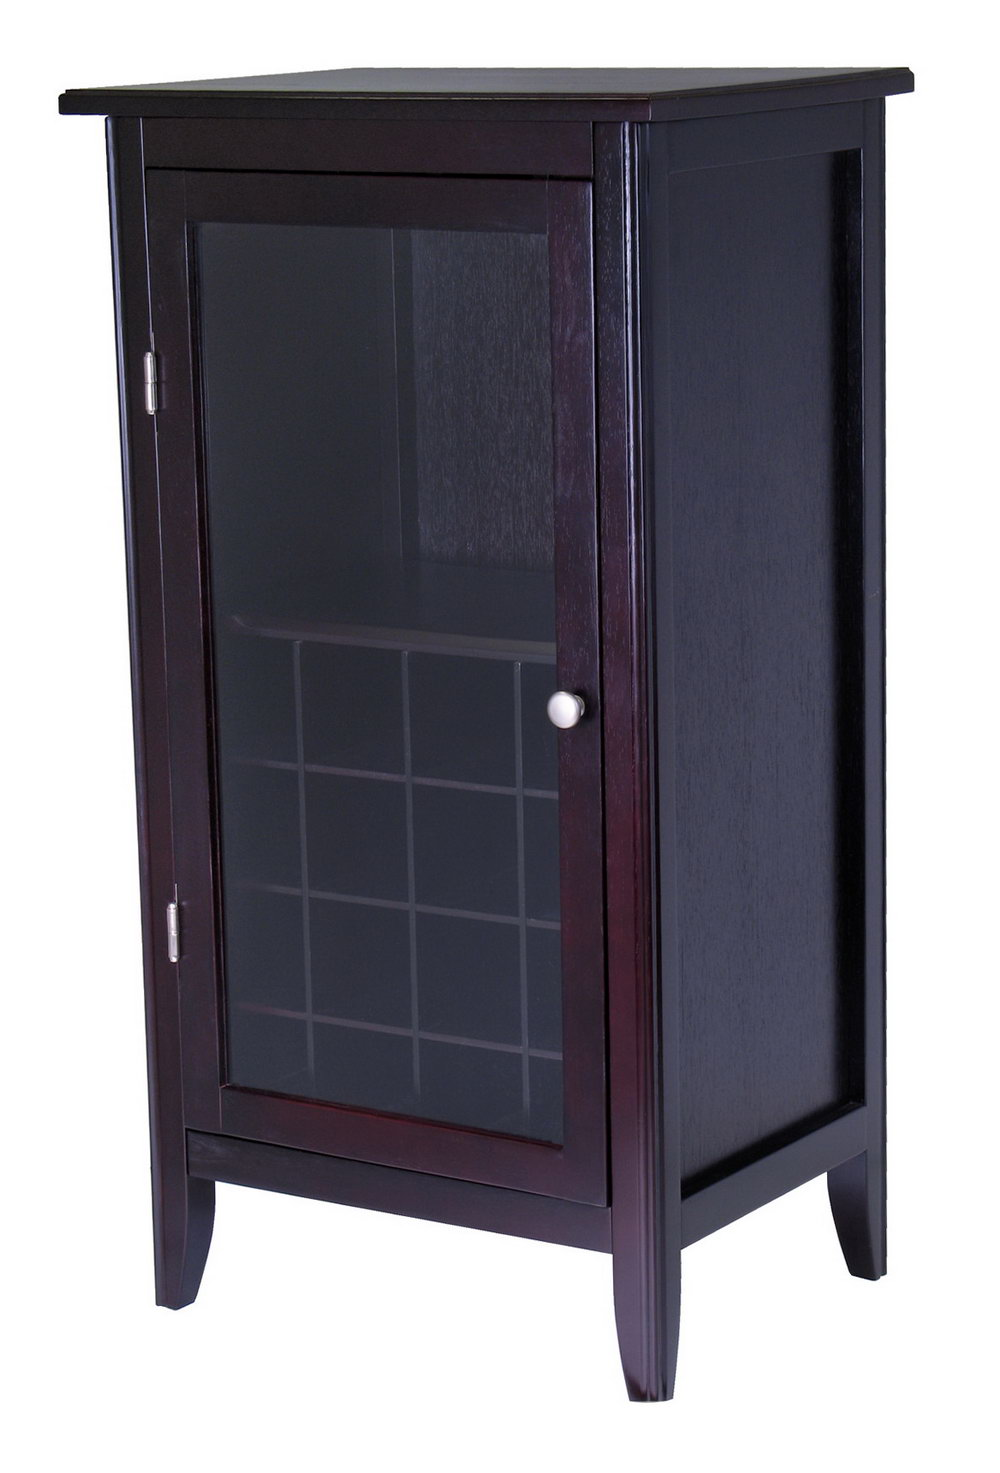 Wine Storage Cabinets Reviews